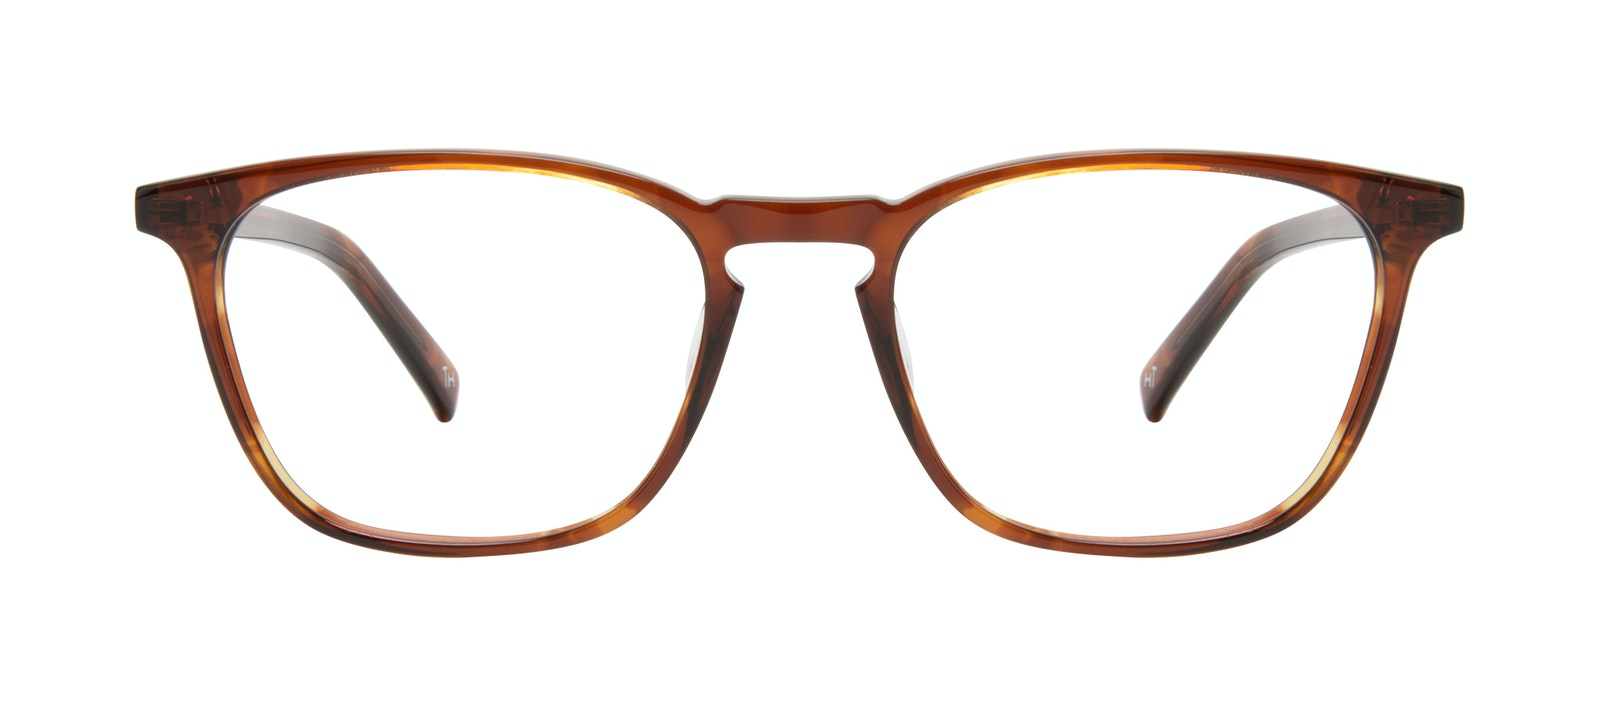 Affordable Fashion Glasses Square Eyeglasses Men Louise XL Cedar Front